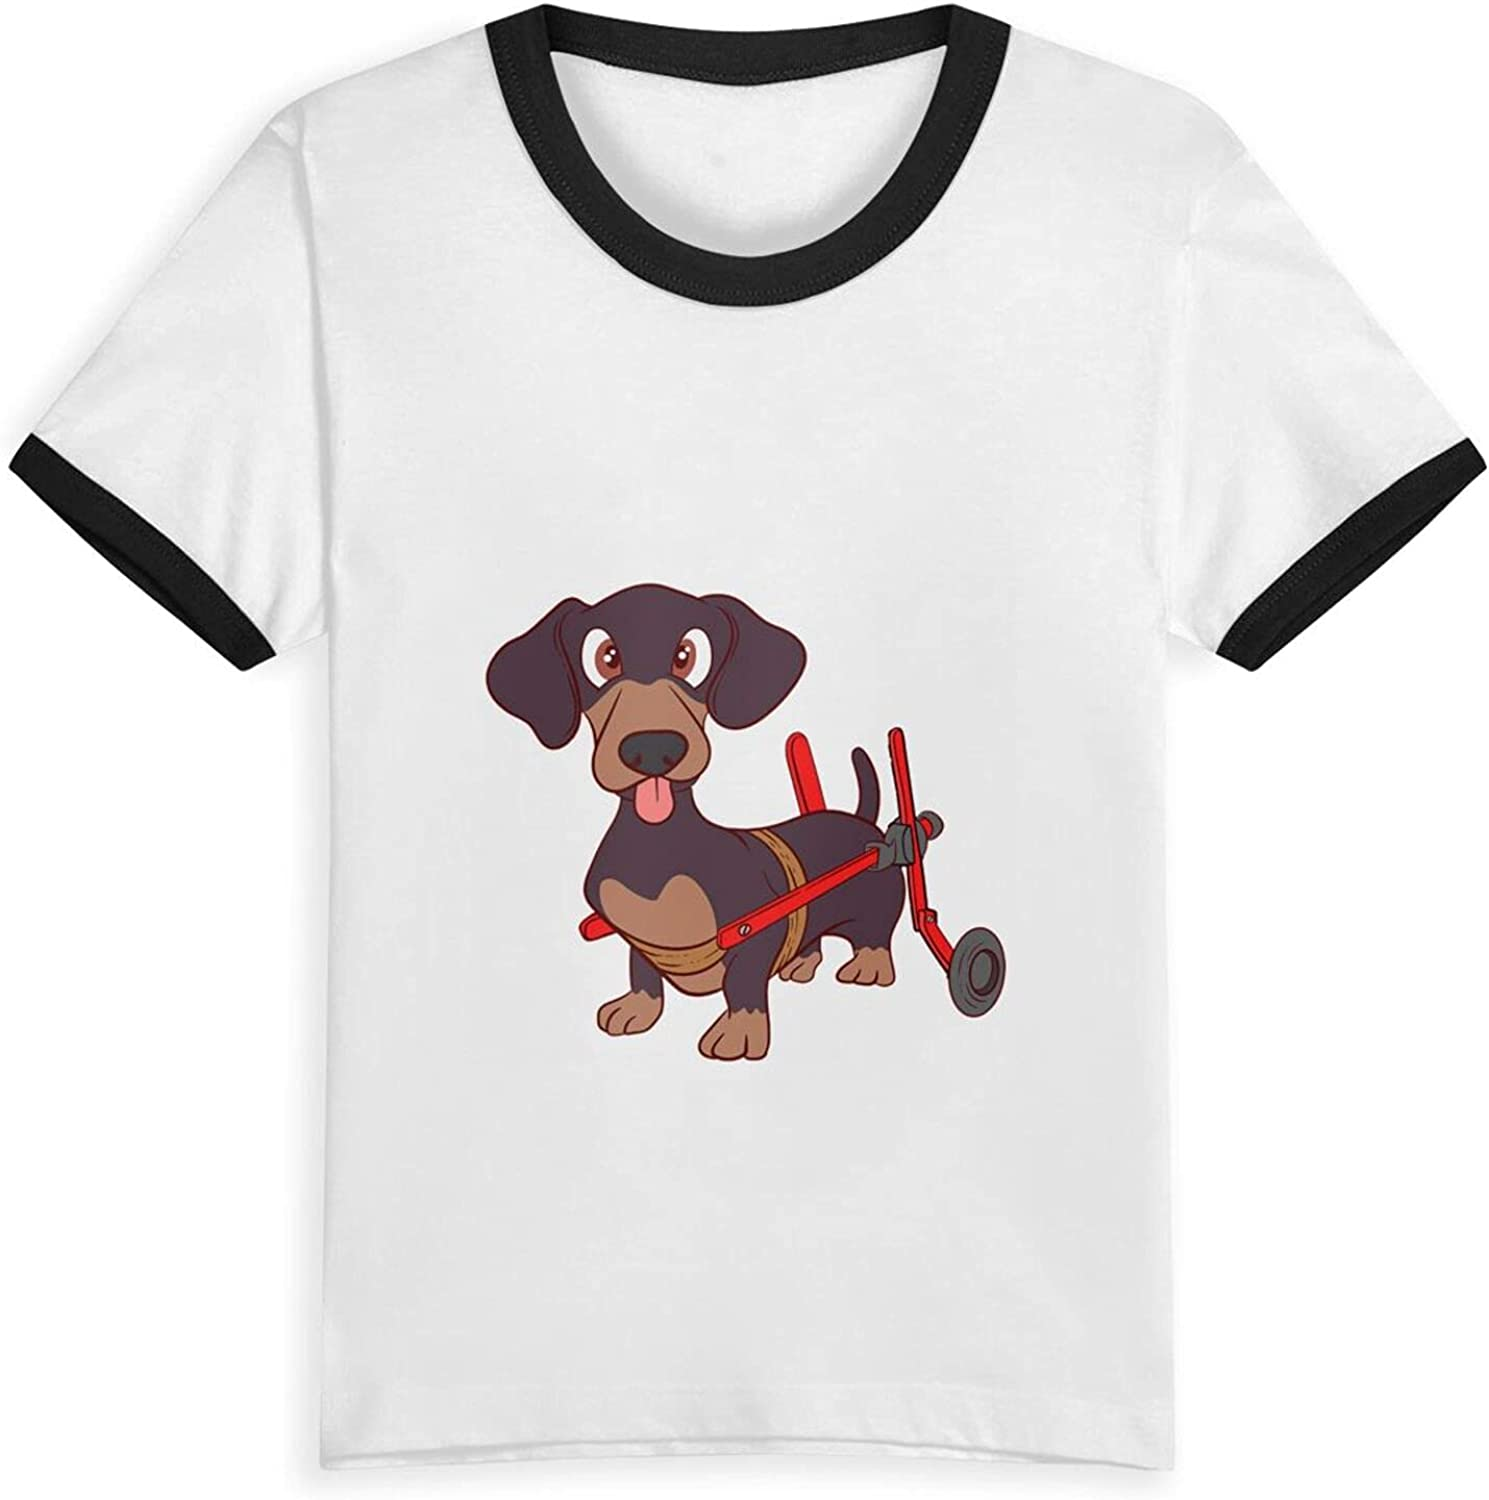 Best Dachshund Ever Paw T-Shirts Novelty for Kids Tees with Cool Designs